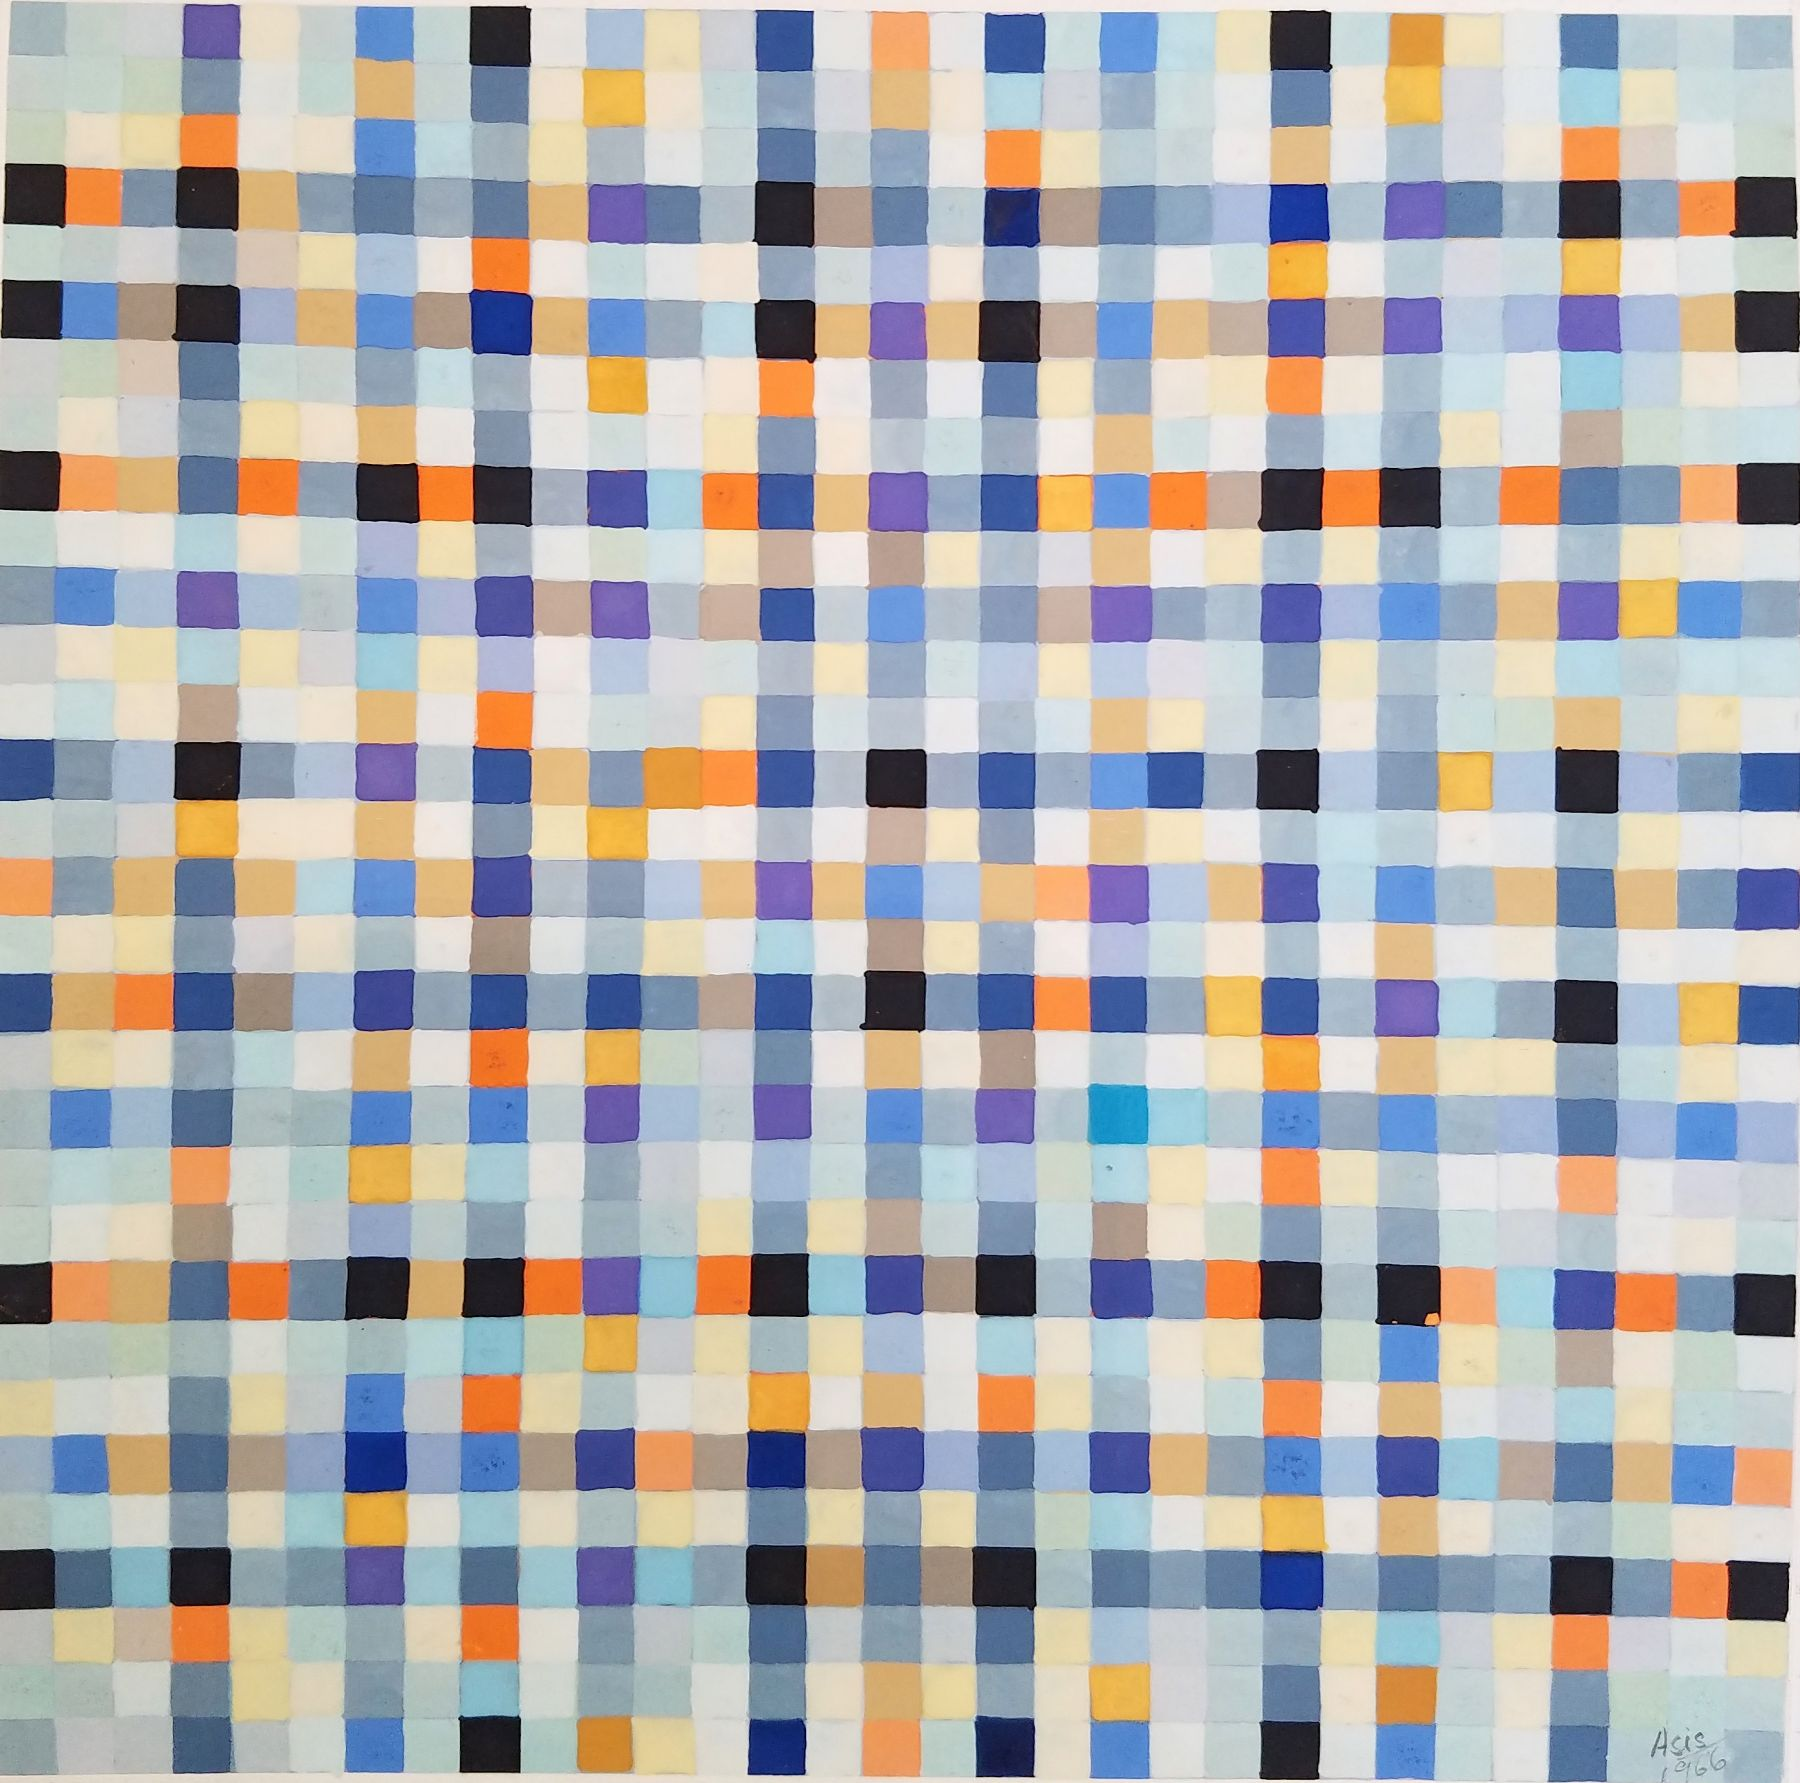 Antonio Asis,Untitled from the series Chromatisme Quadrillé Polychrome, 1966, Gouache on paper,11 3/4 x 8 3/8 in. (29.8 x 21.2 cm.)